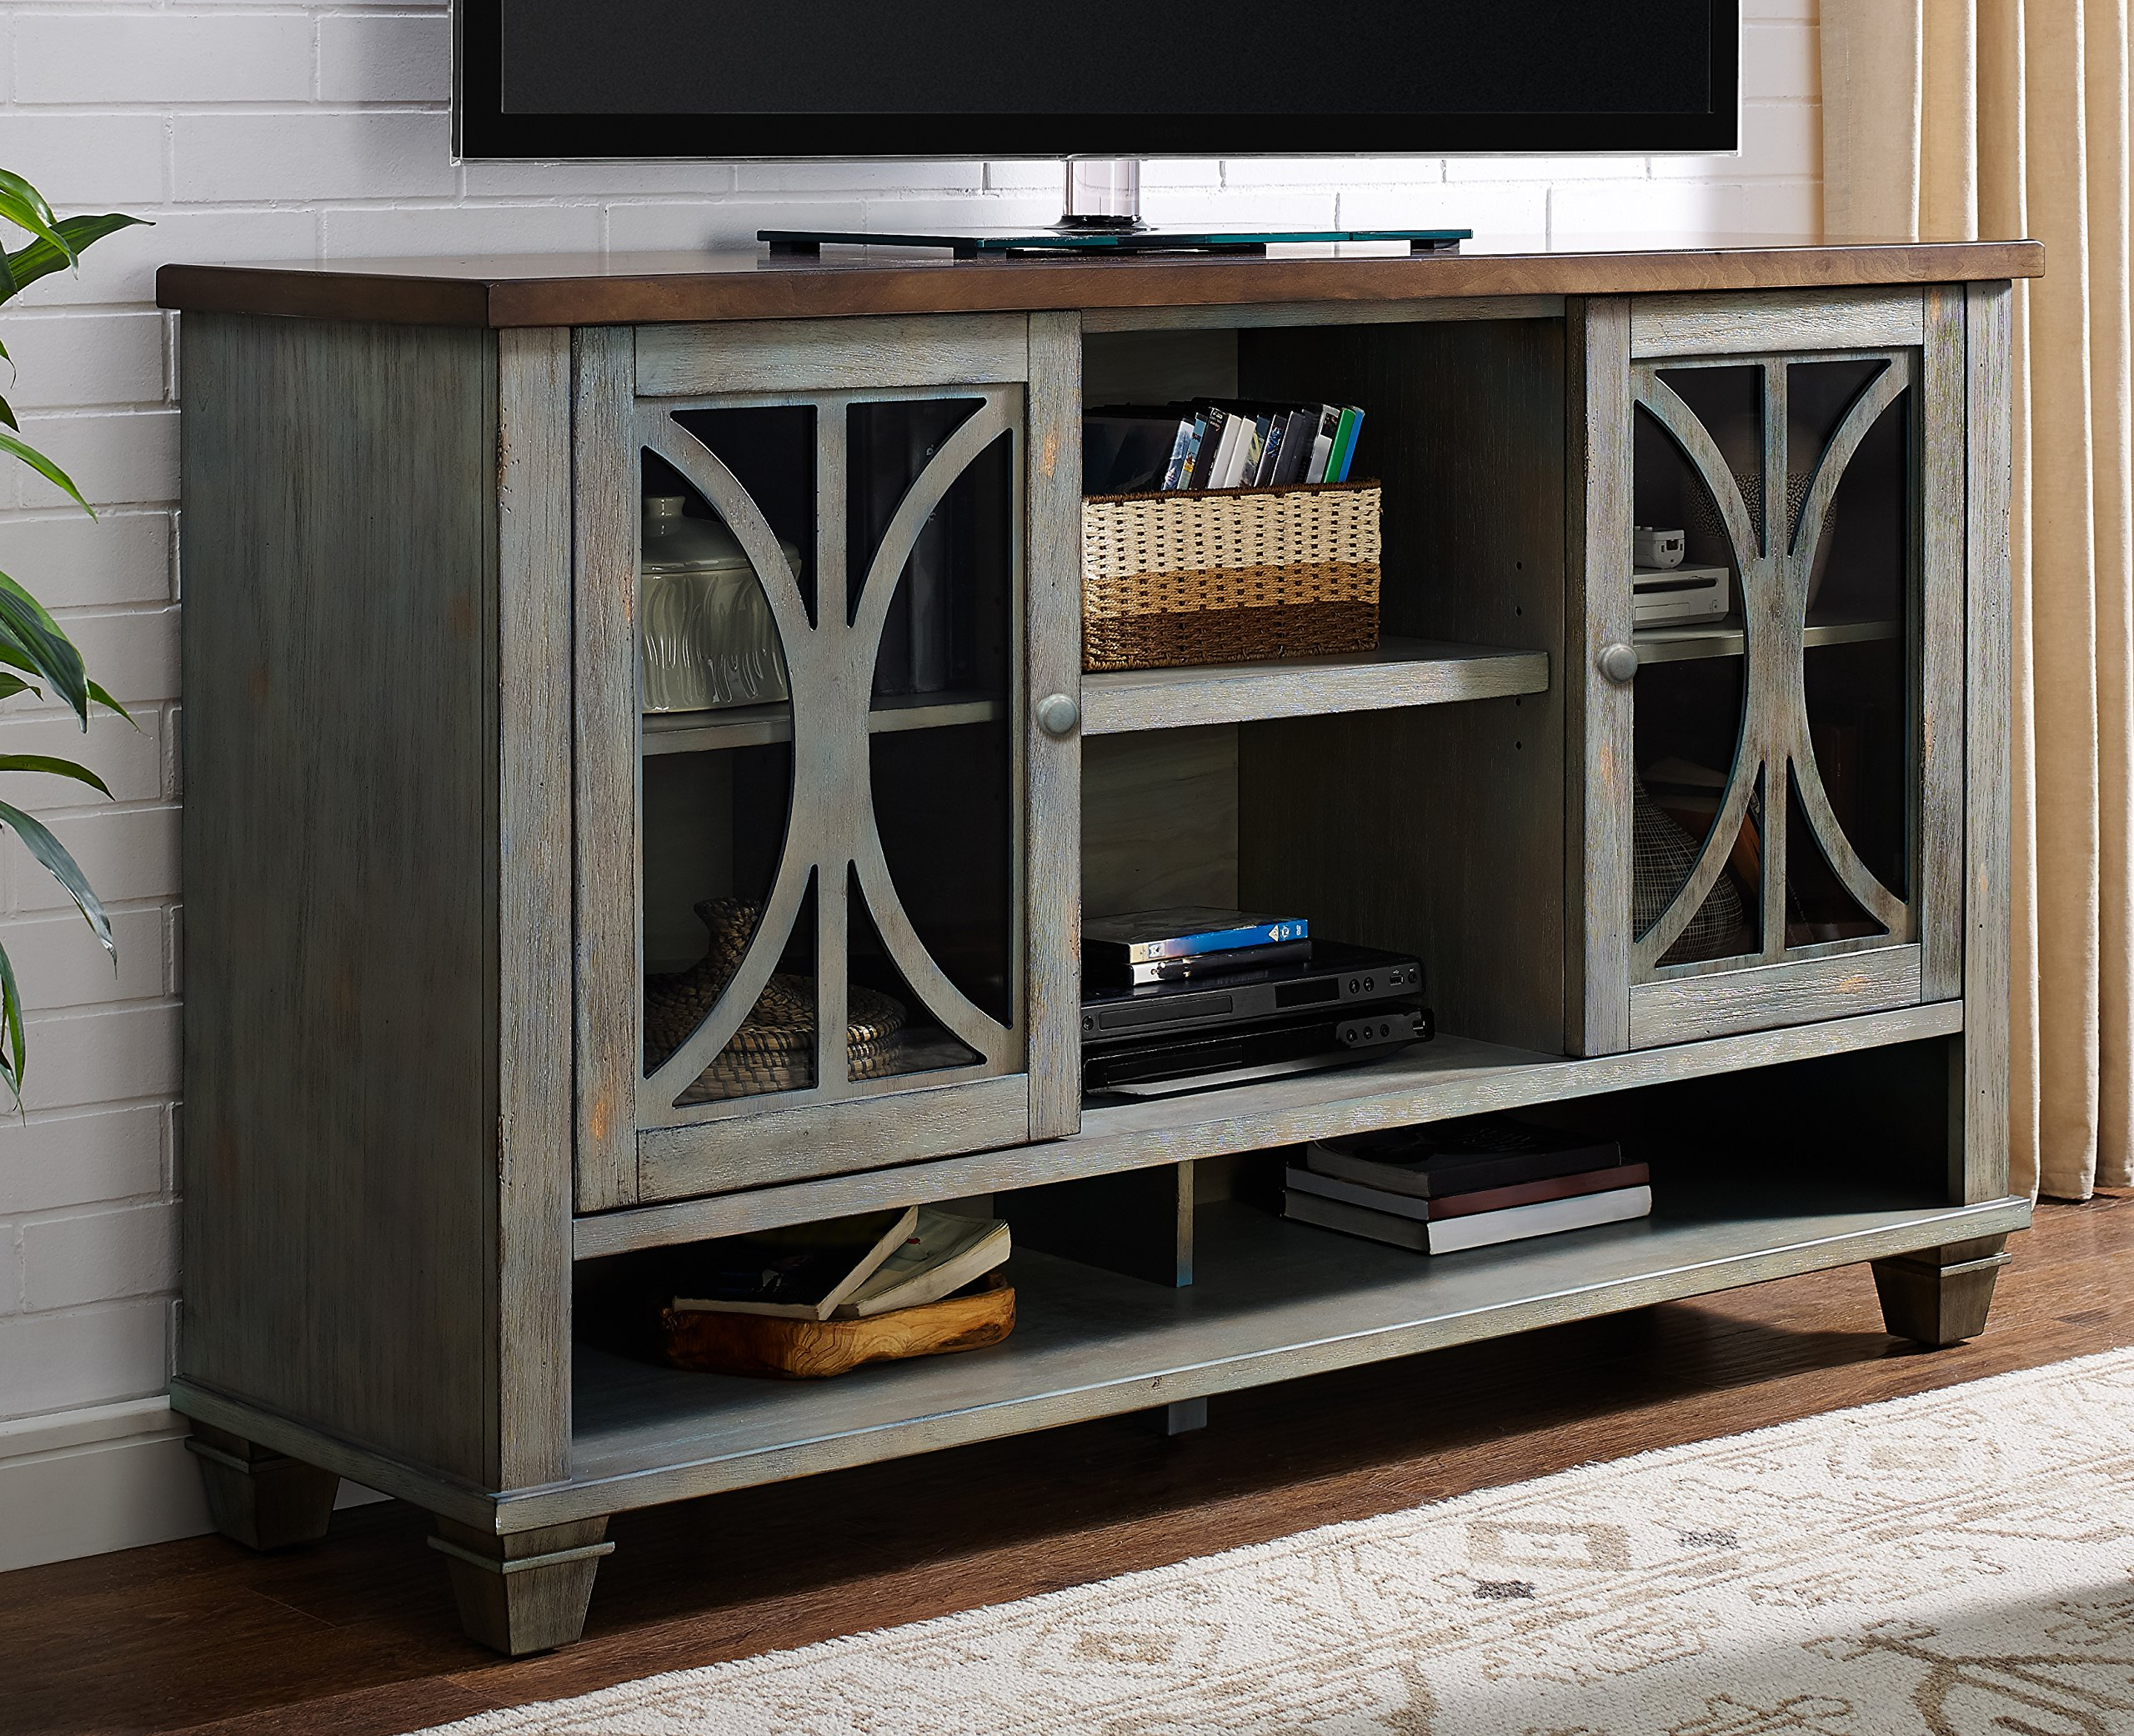 Martin Furniture Fully Assembled Bailey Deluxe Console, 60'', Weathered Green by Martin Furniture